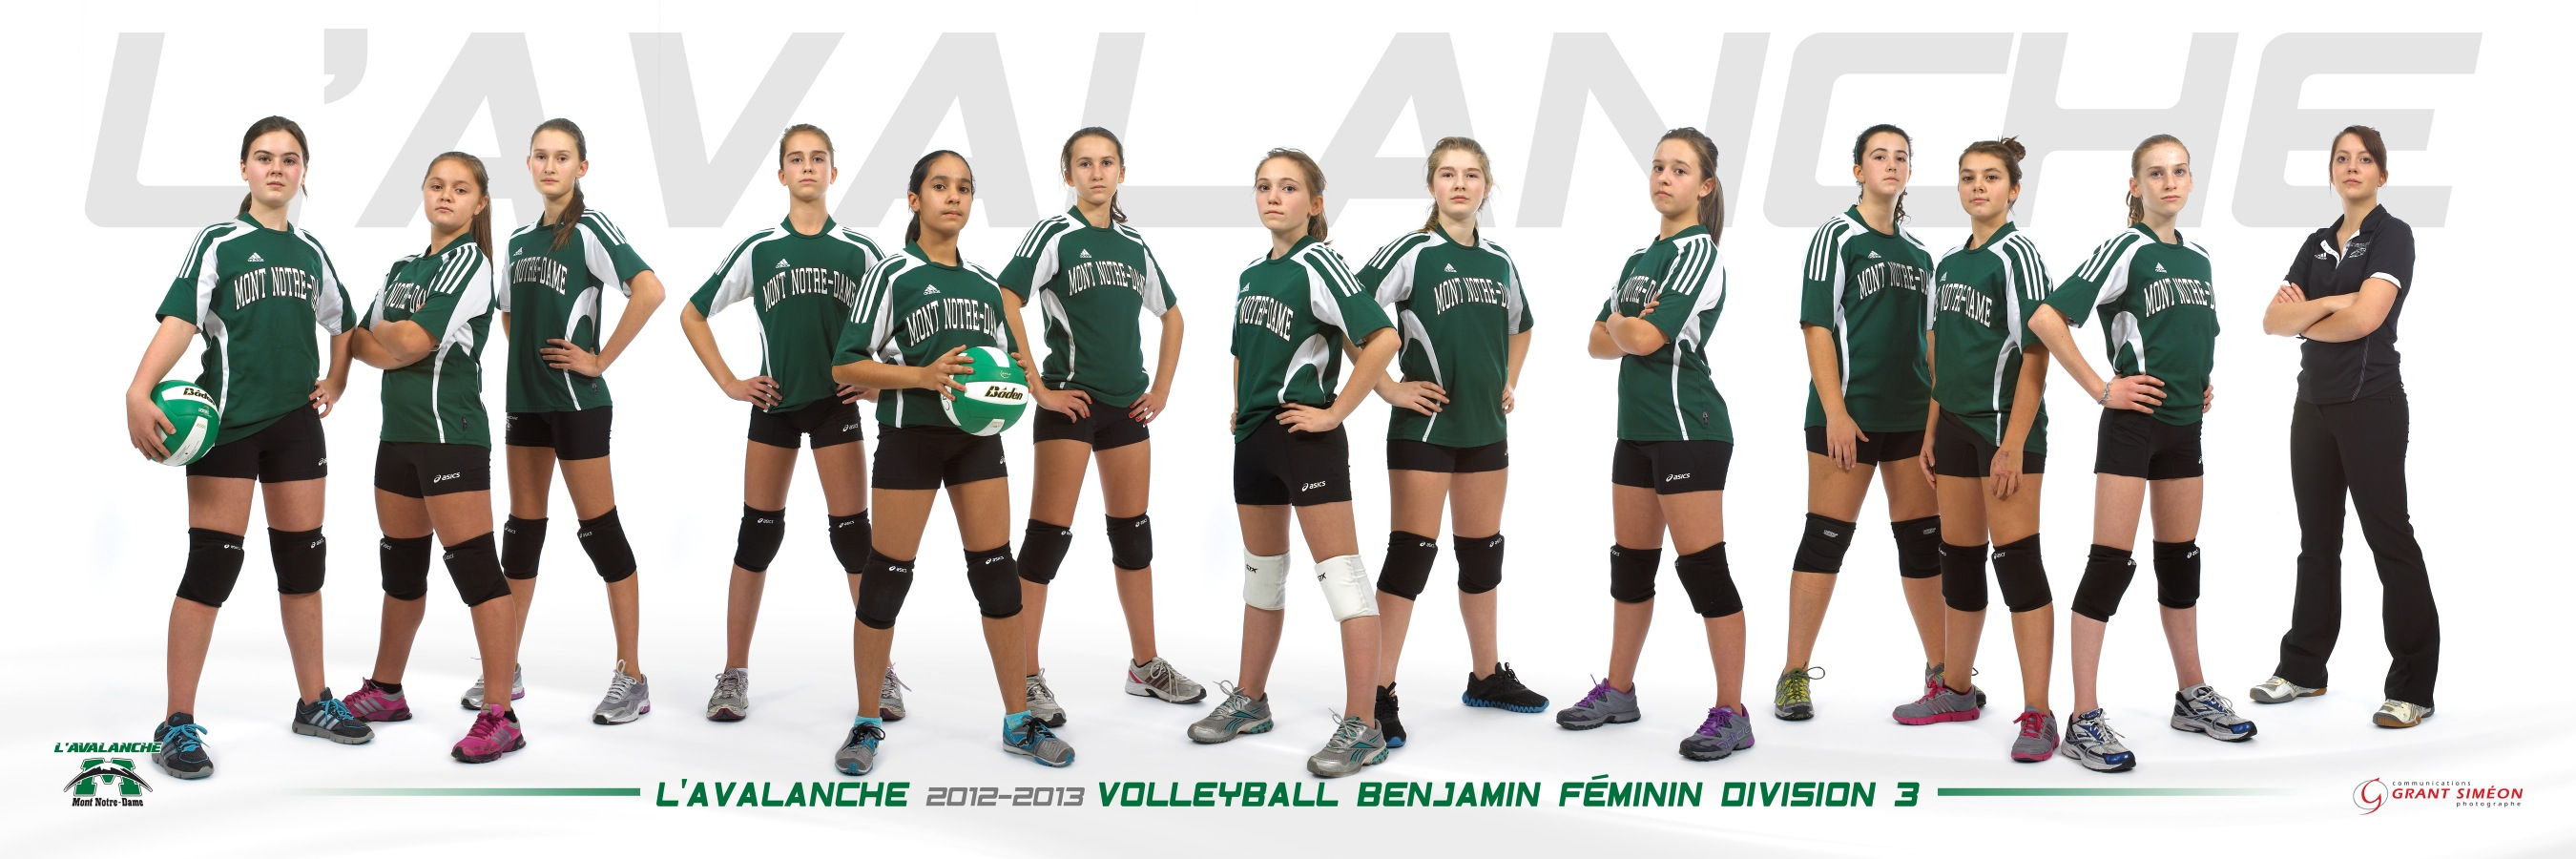 volleyball benjamine division 3